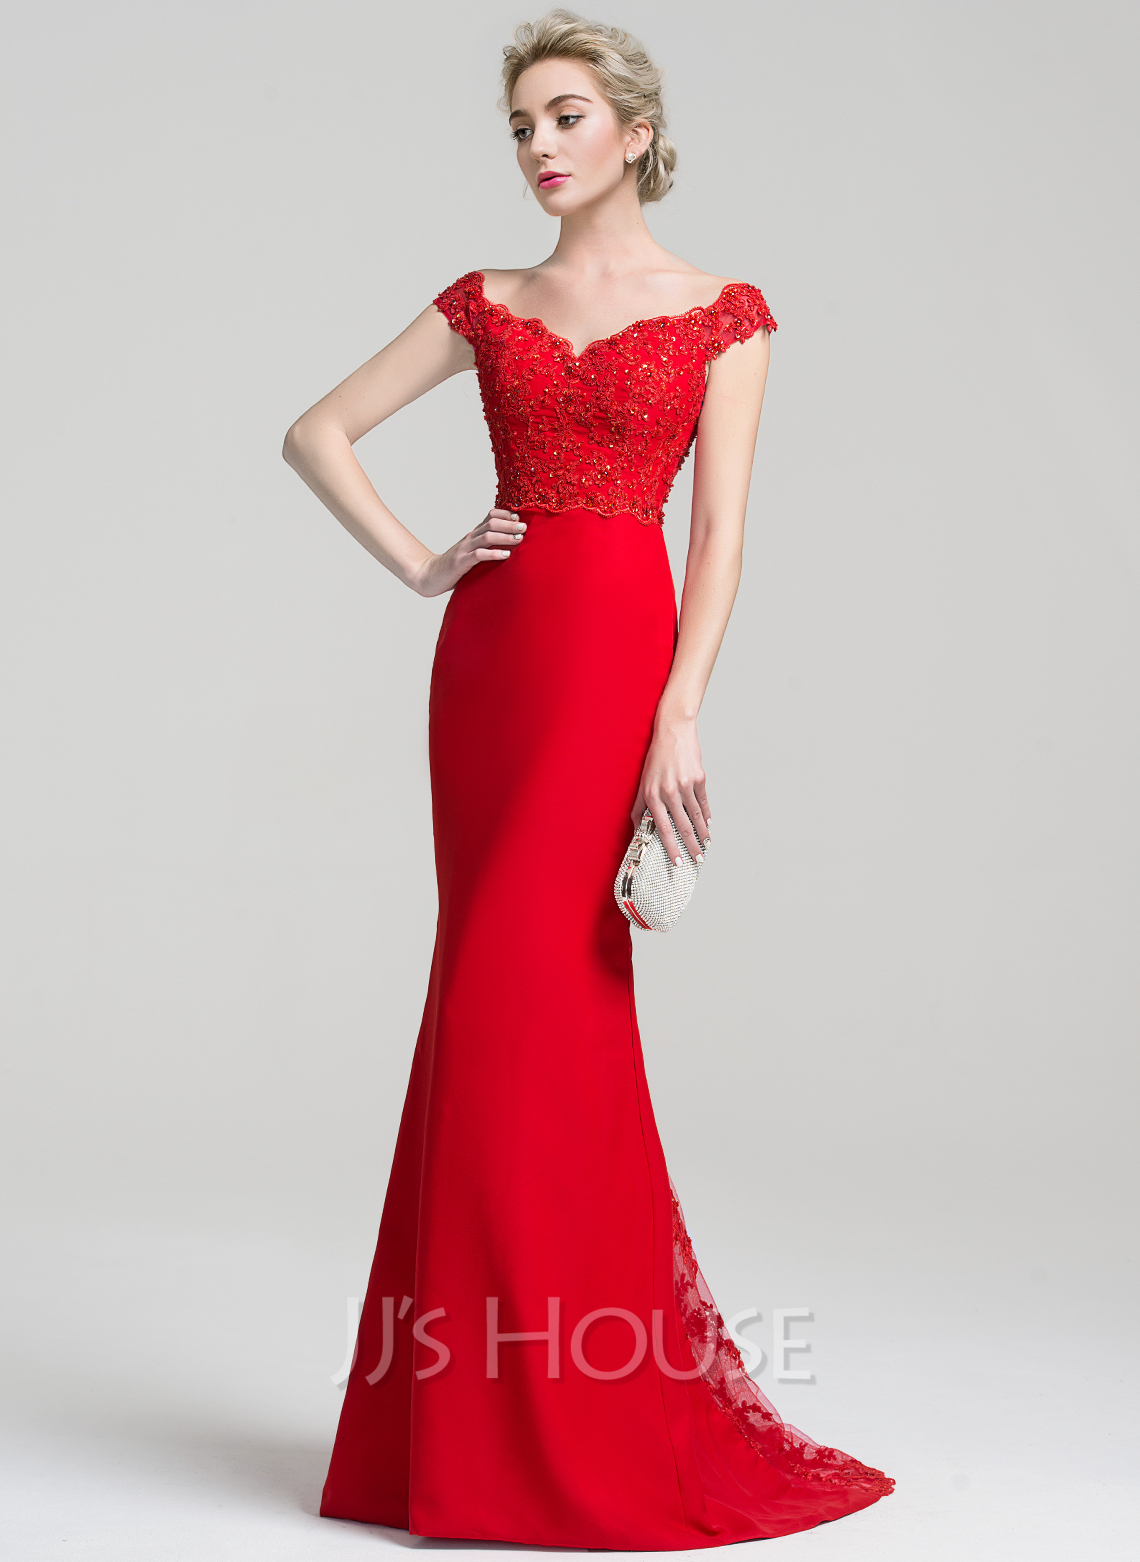 98a95cd5a0d Trumpet Mermaid Off-the-Shoulder Sweep Train Chiffon Lace Evening Dress  With Beading. Loading zoom